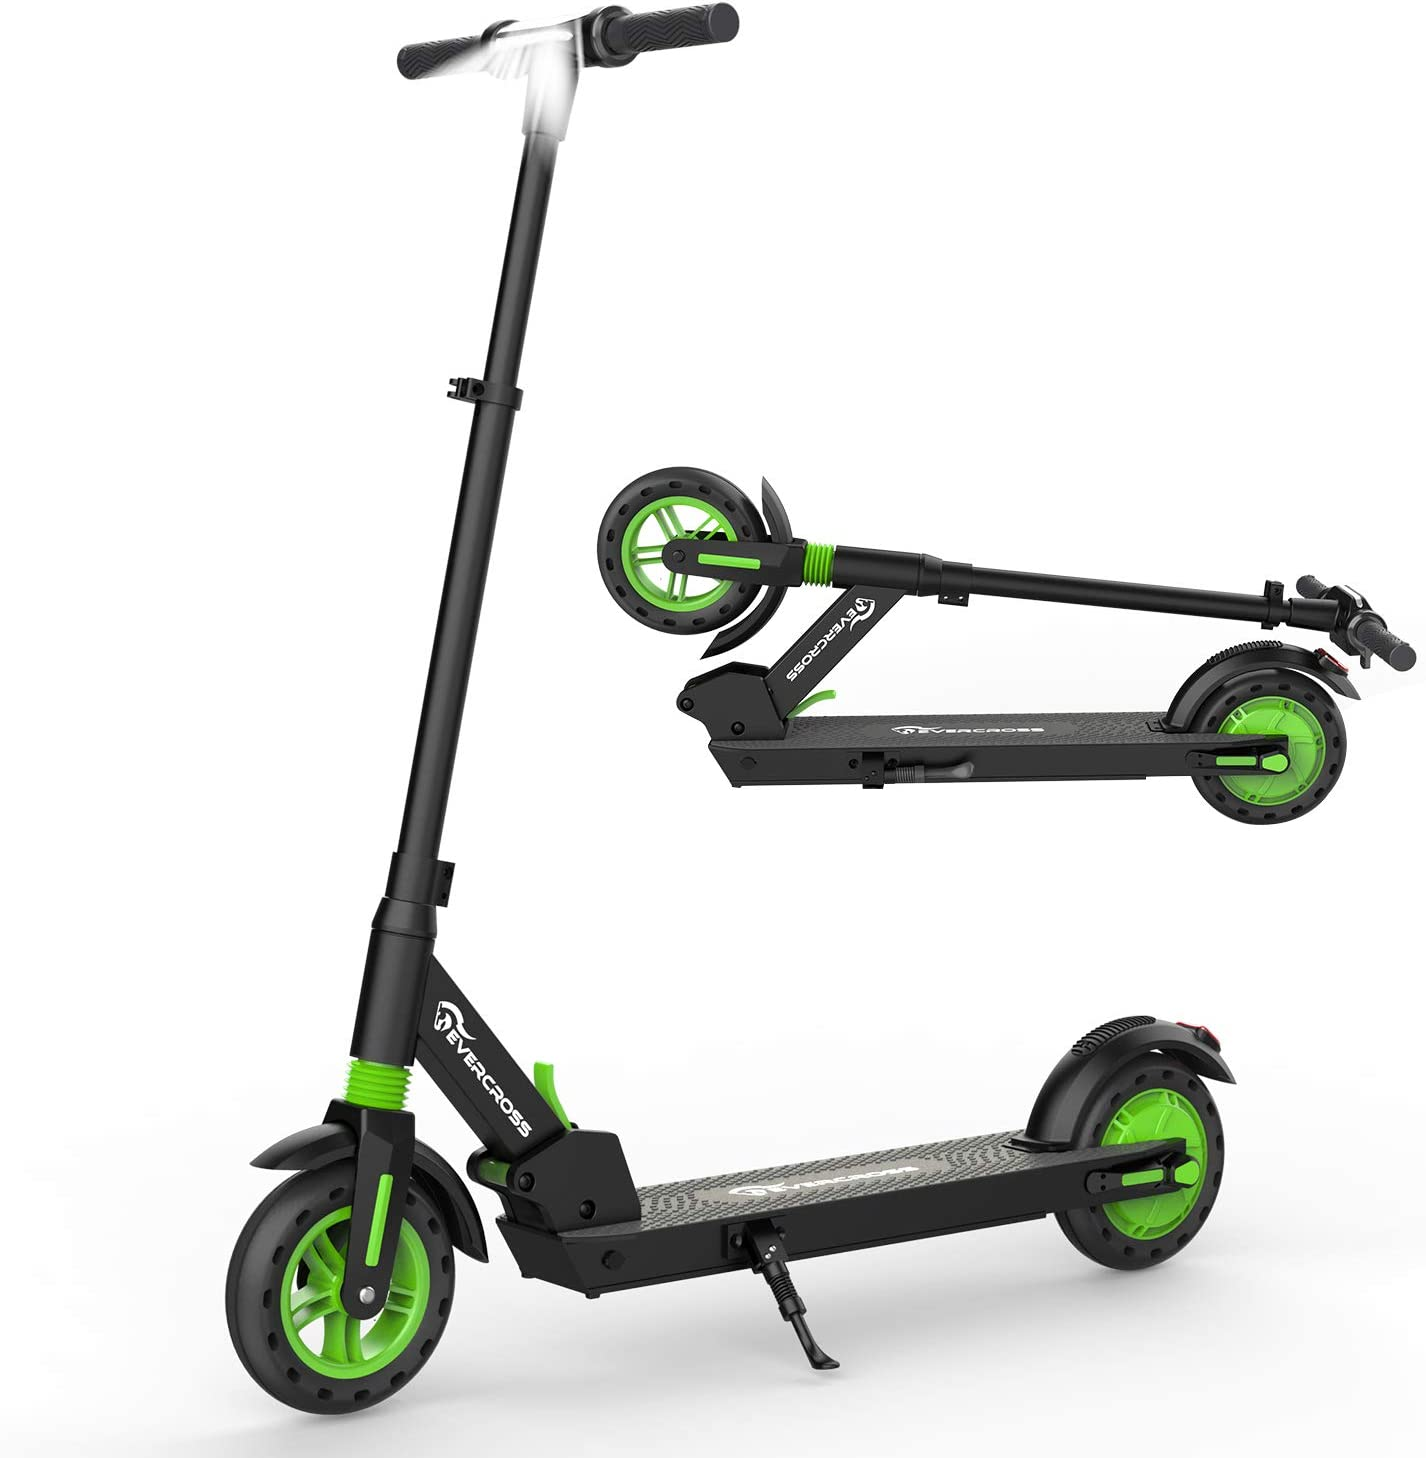 EVERCROSS Folding Electric Scooter with 8 Inch Tires for 4.15